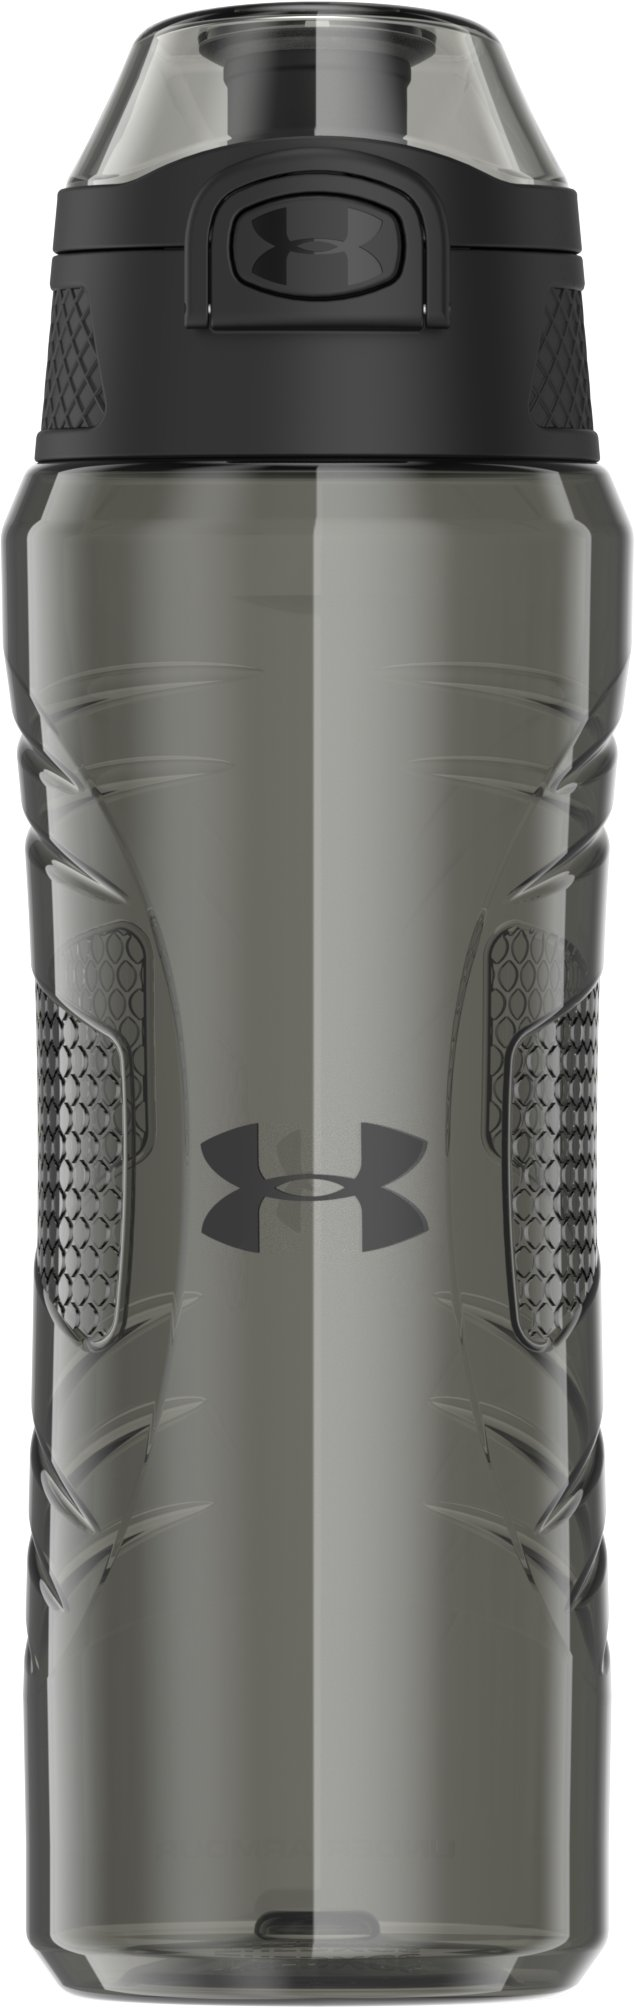 UA Draft 24 oz. Tritan Bottle with Flip Top Lid, Charcoal